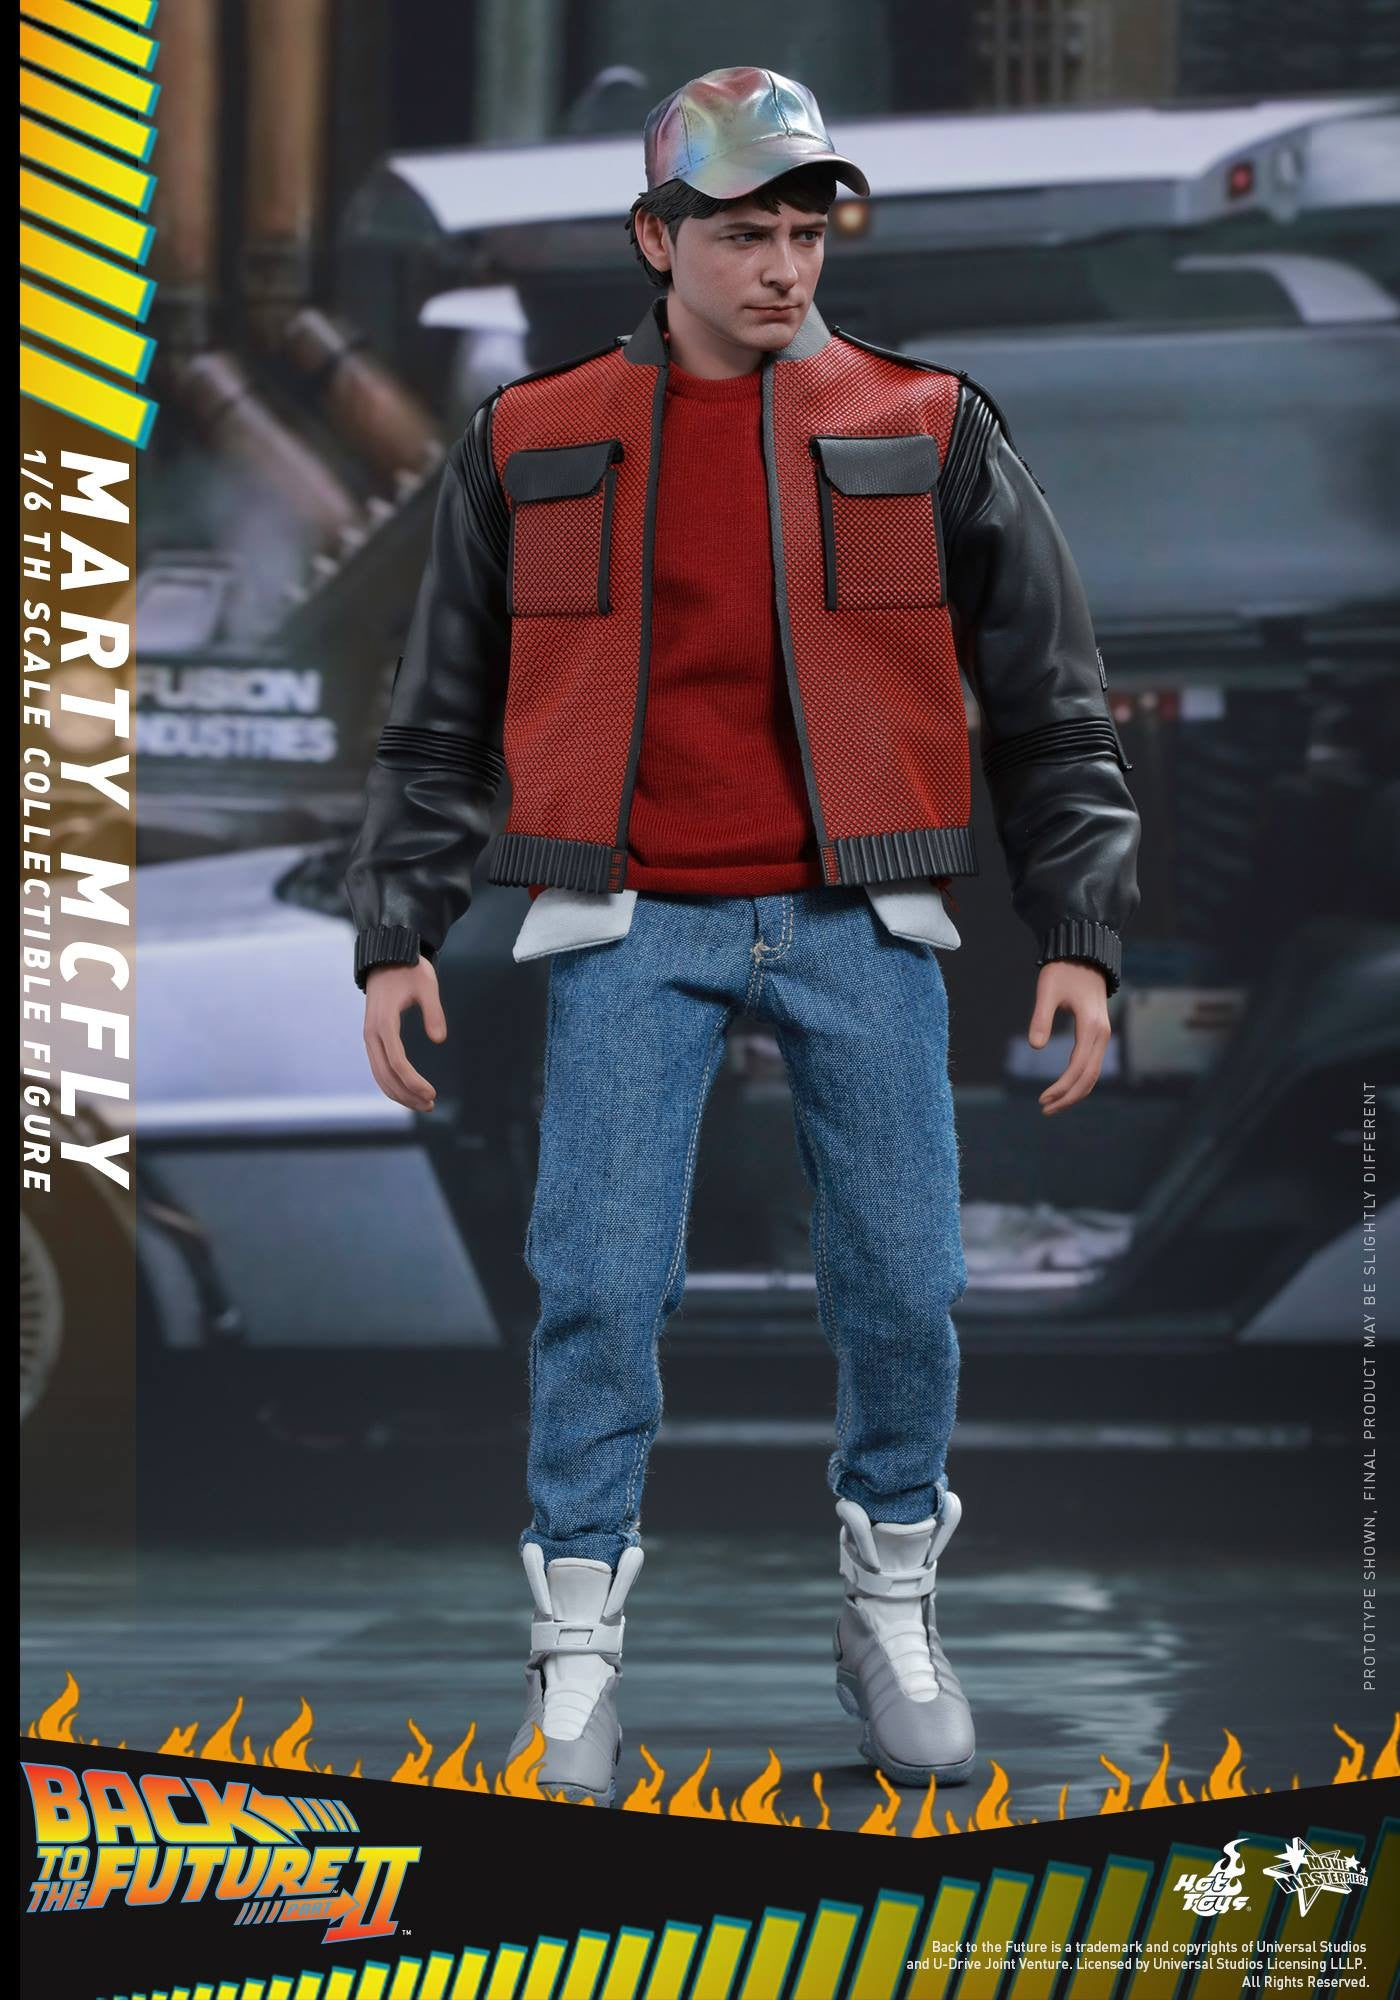 Hot Toys - MMS379 - Back to The Future Part II - Marty McFly (Normal Edition) - Marvelous Toys - 4